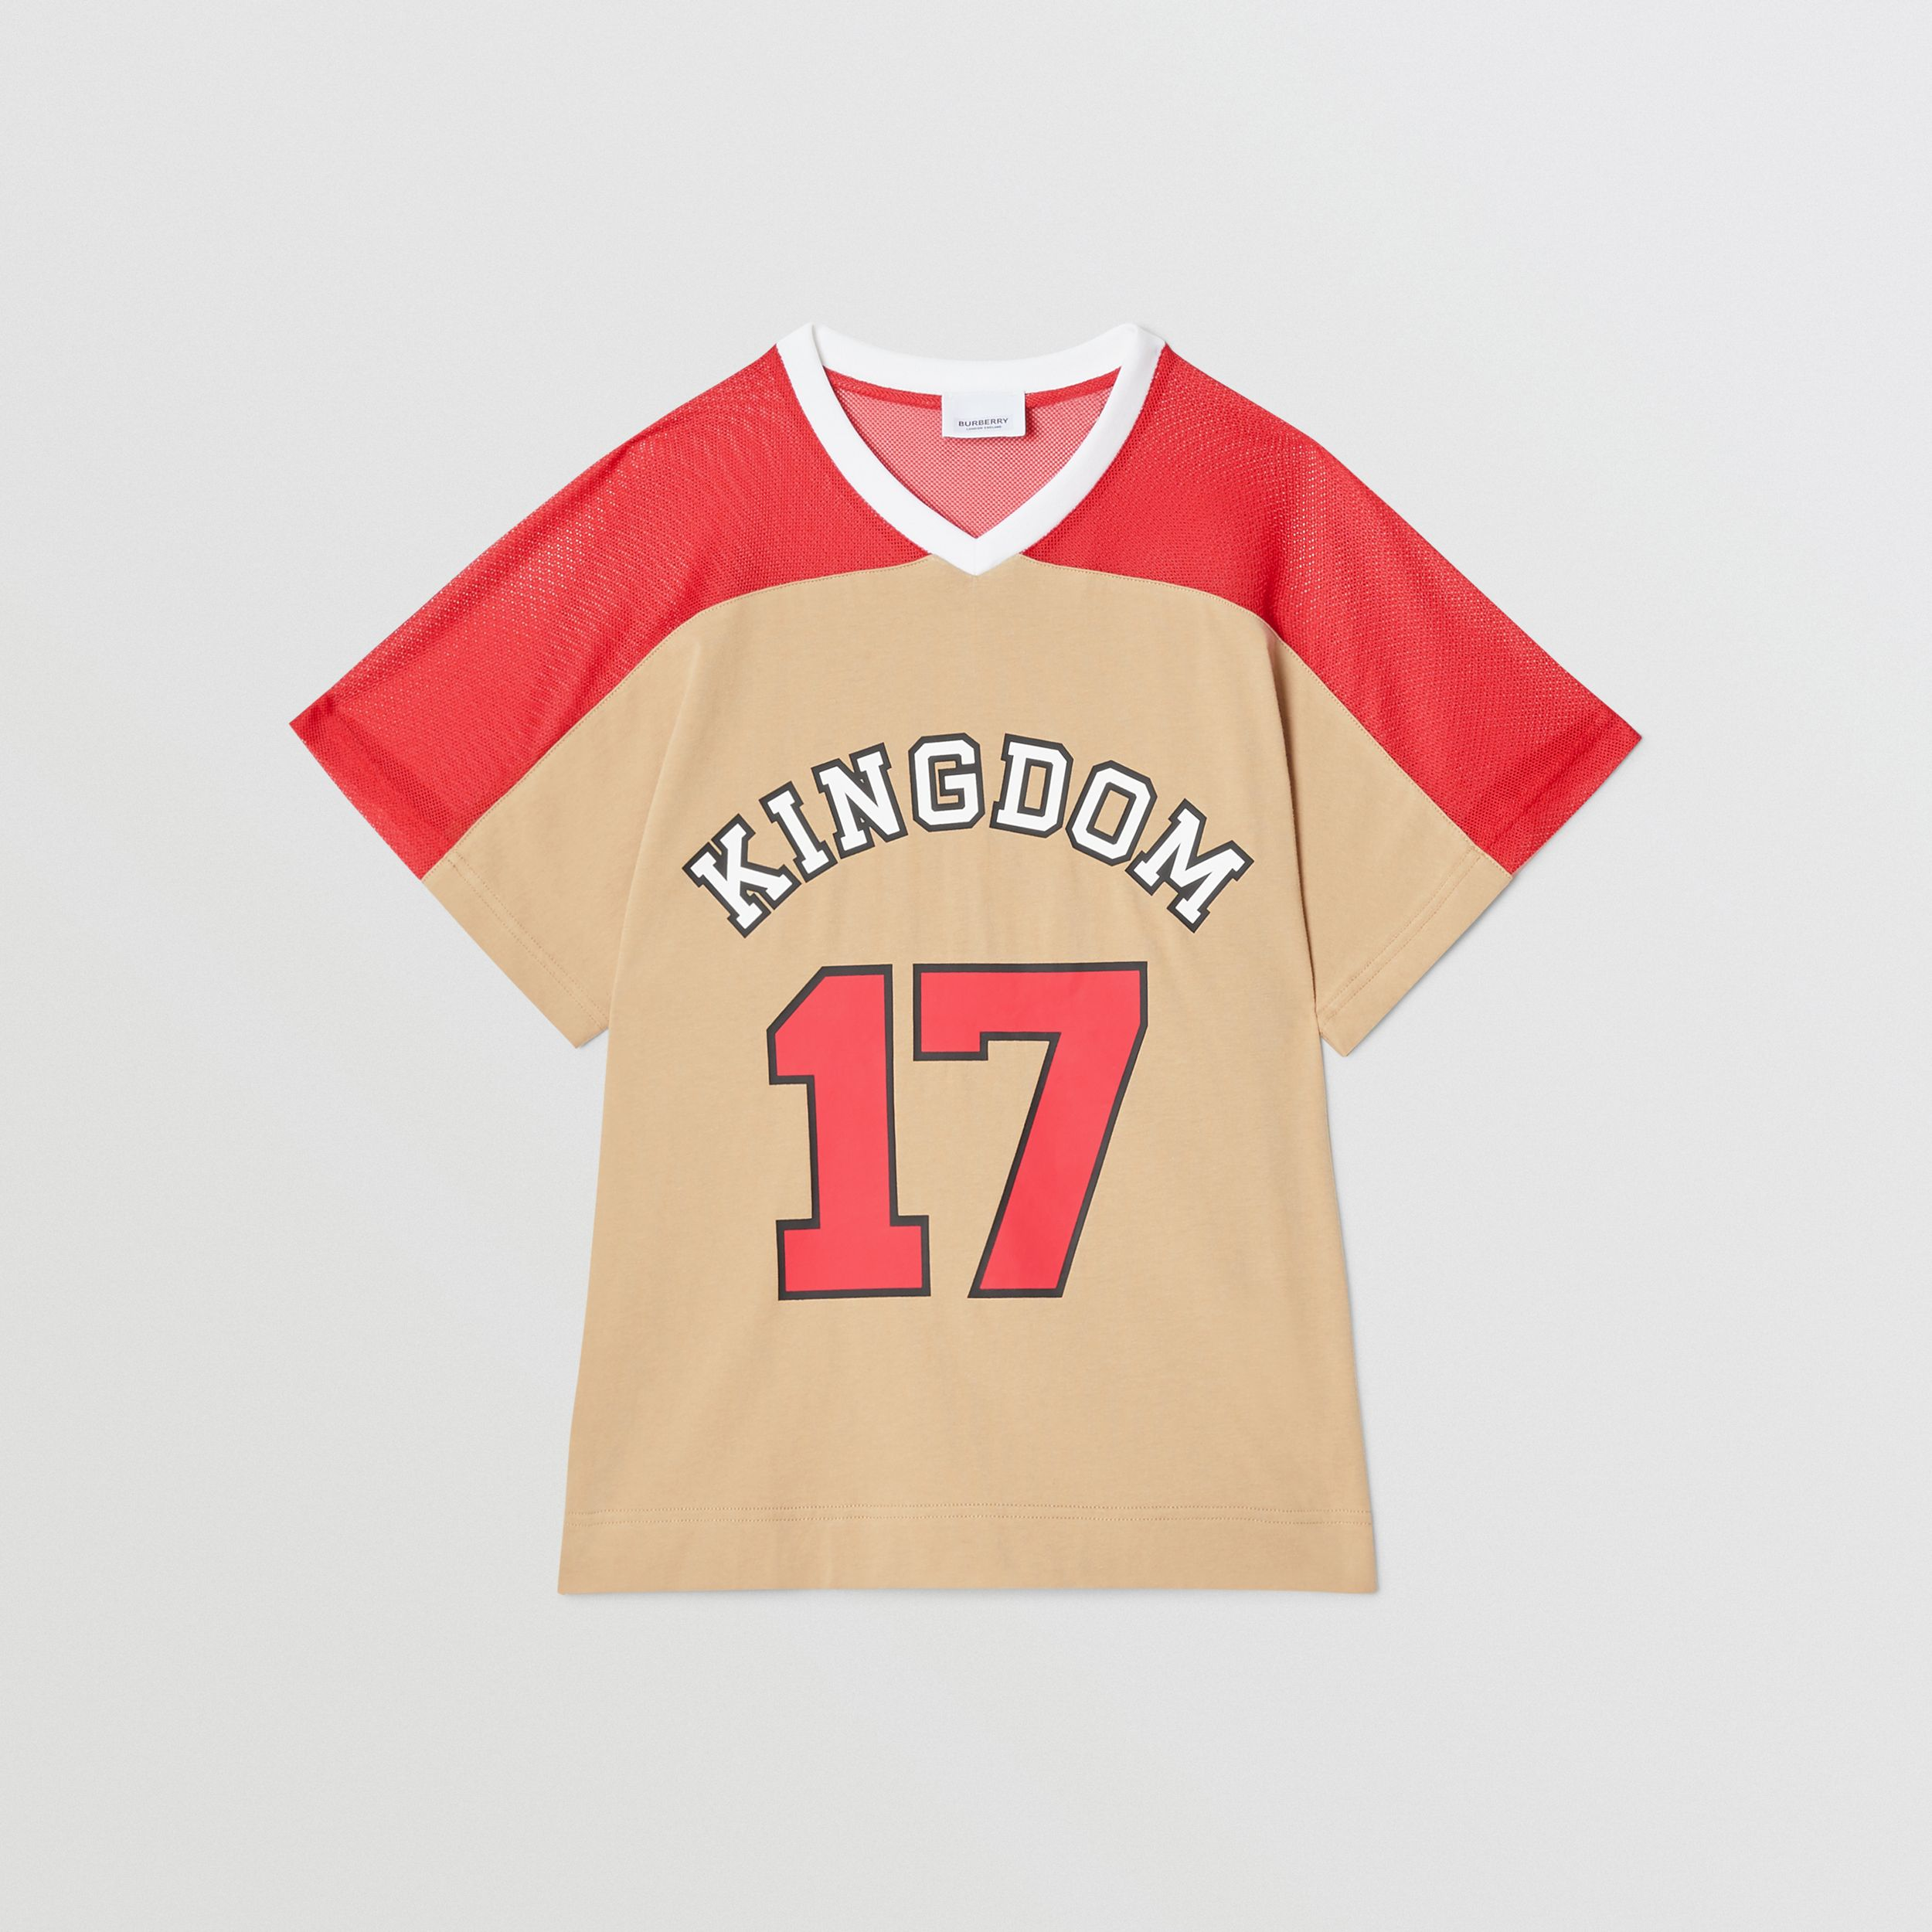 Mesh Panel Kingdom Print Cotton T-shirt in Bright Red | Burberry - 1